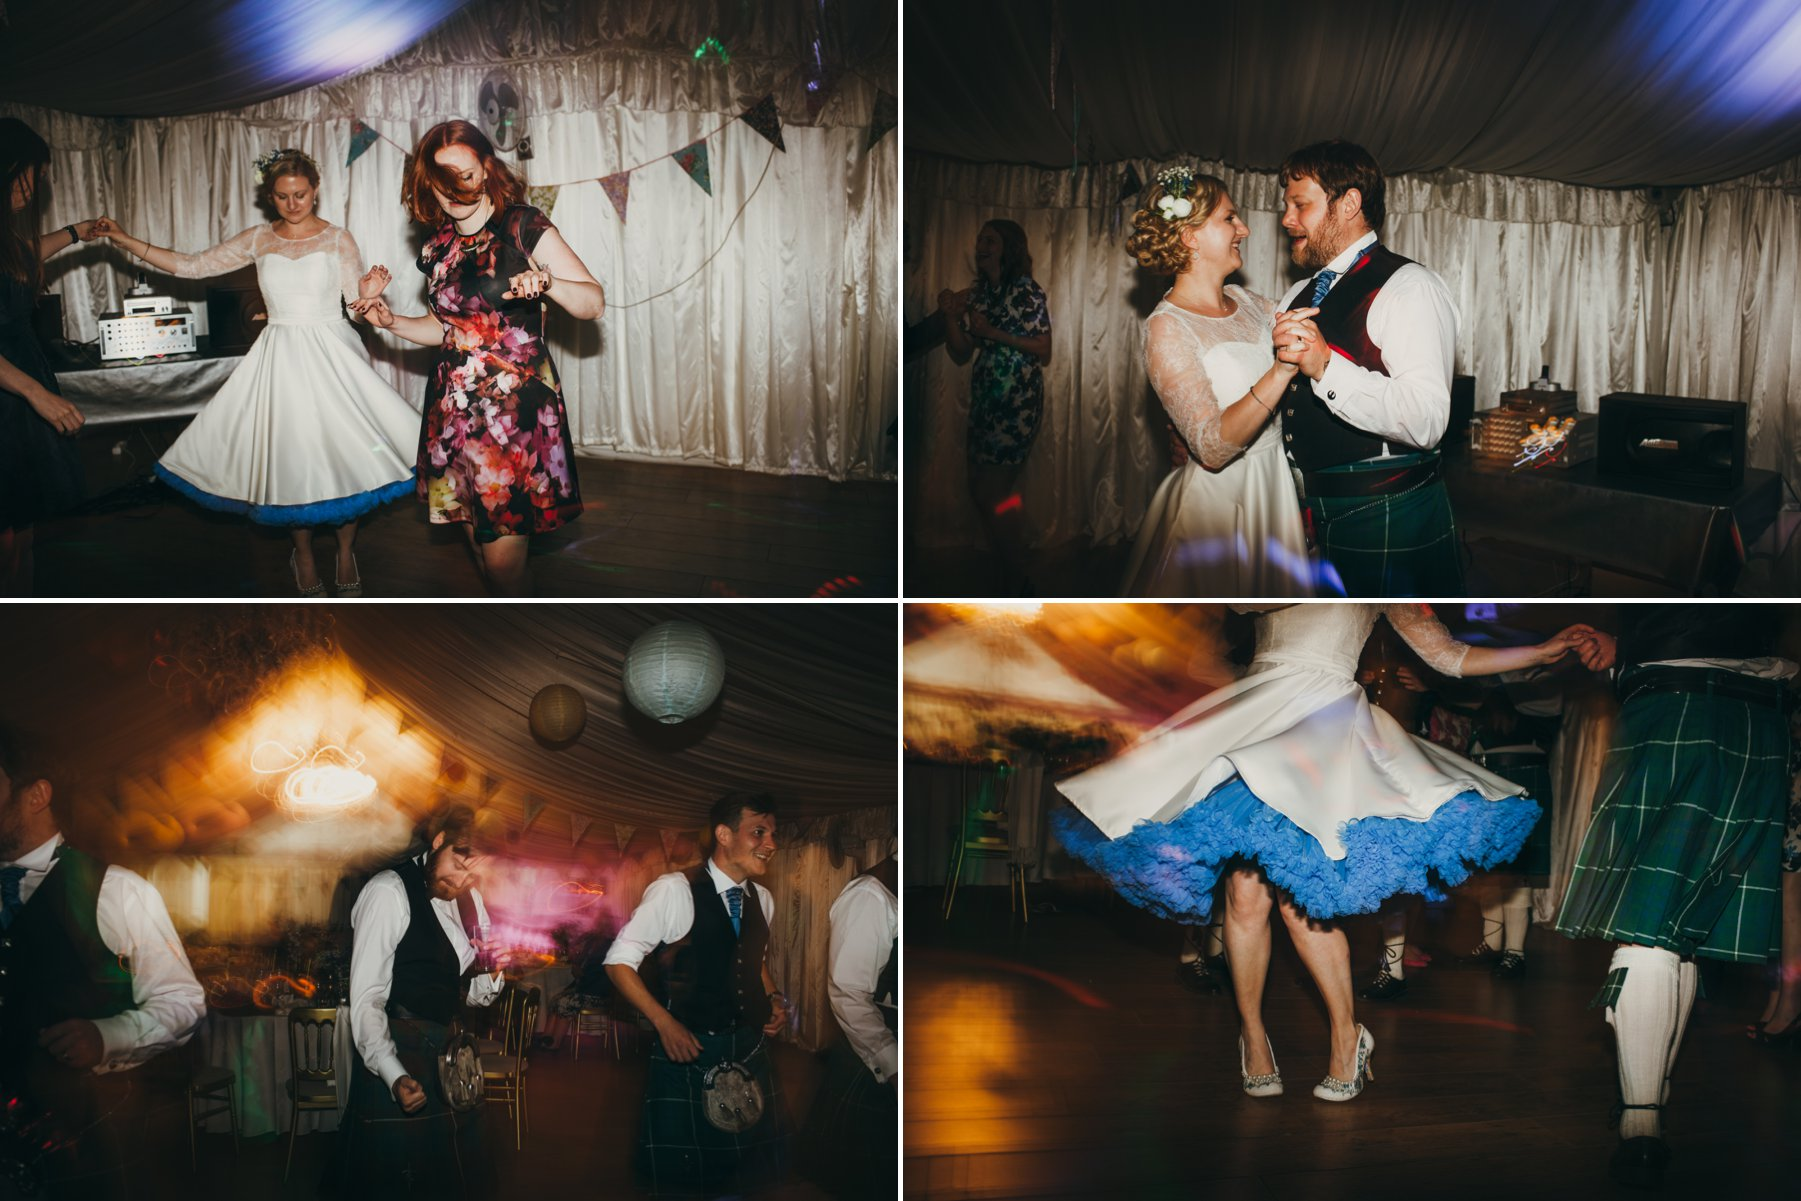 petitmoulin_france_bordeaux_weddings_0129